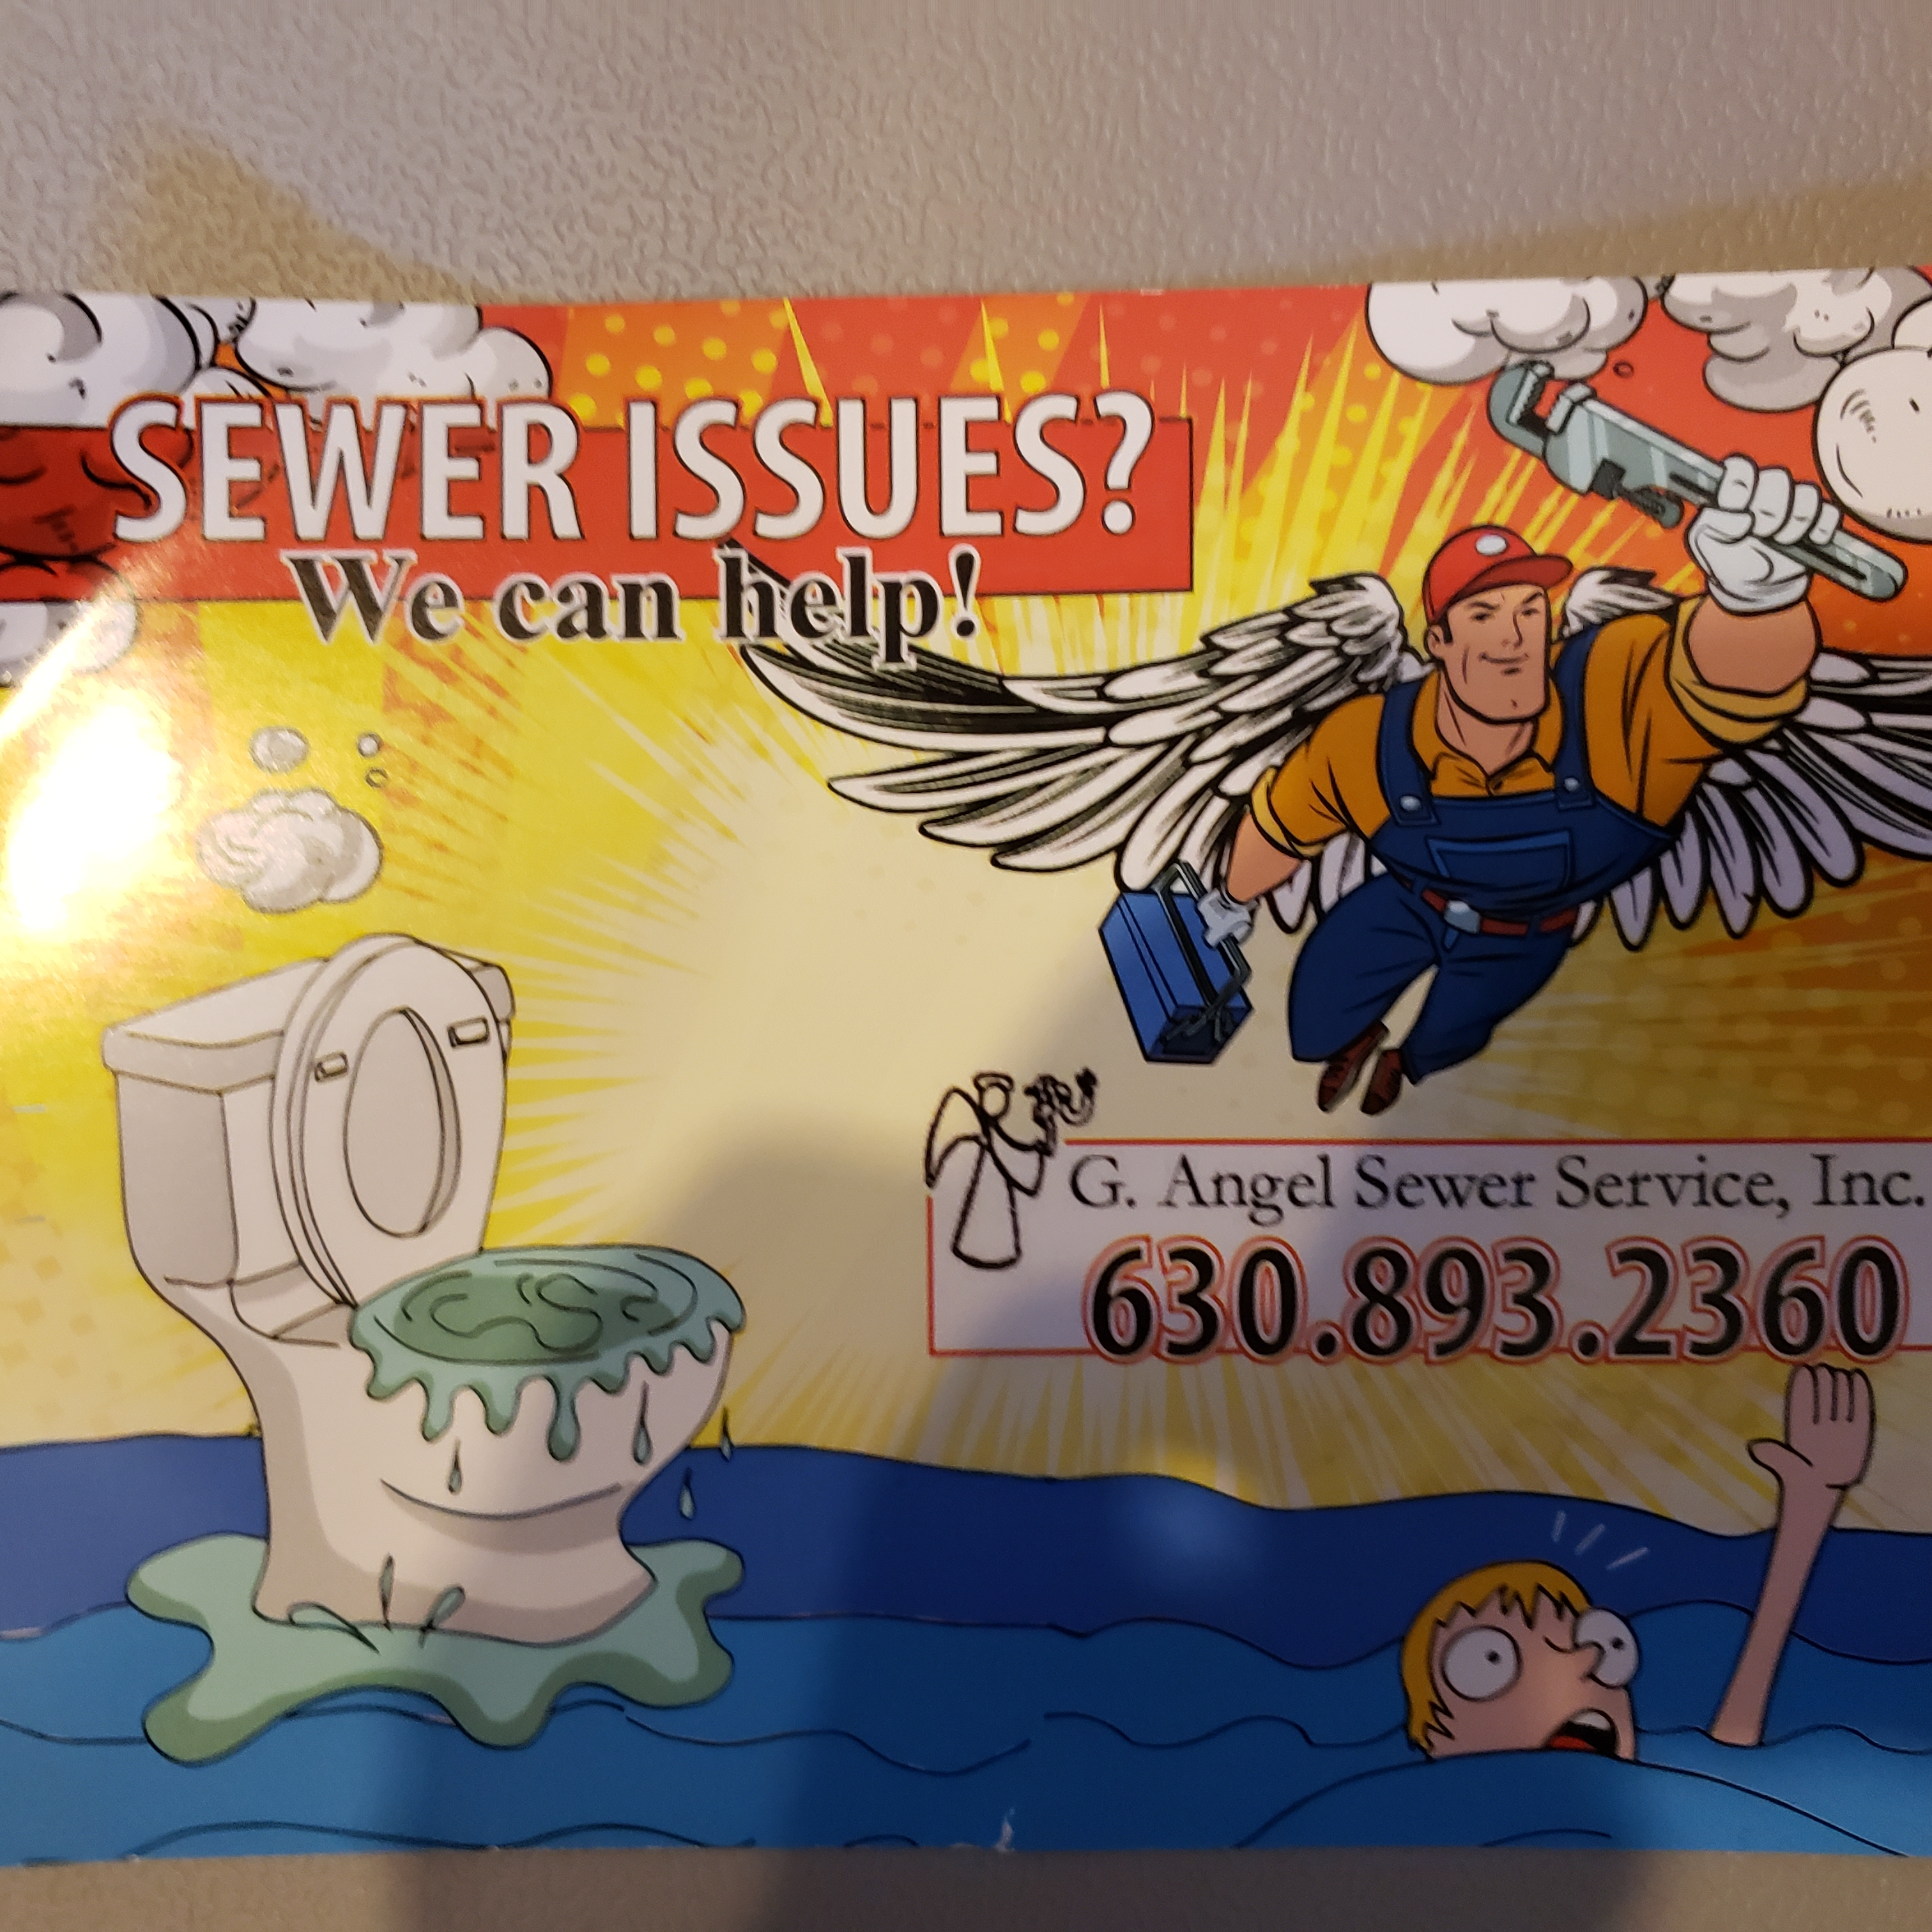 G. Angel Sewer Service